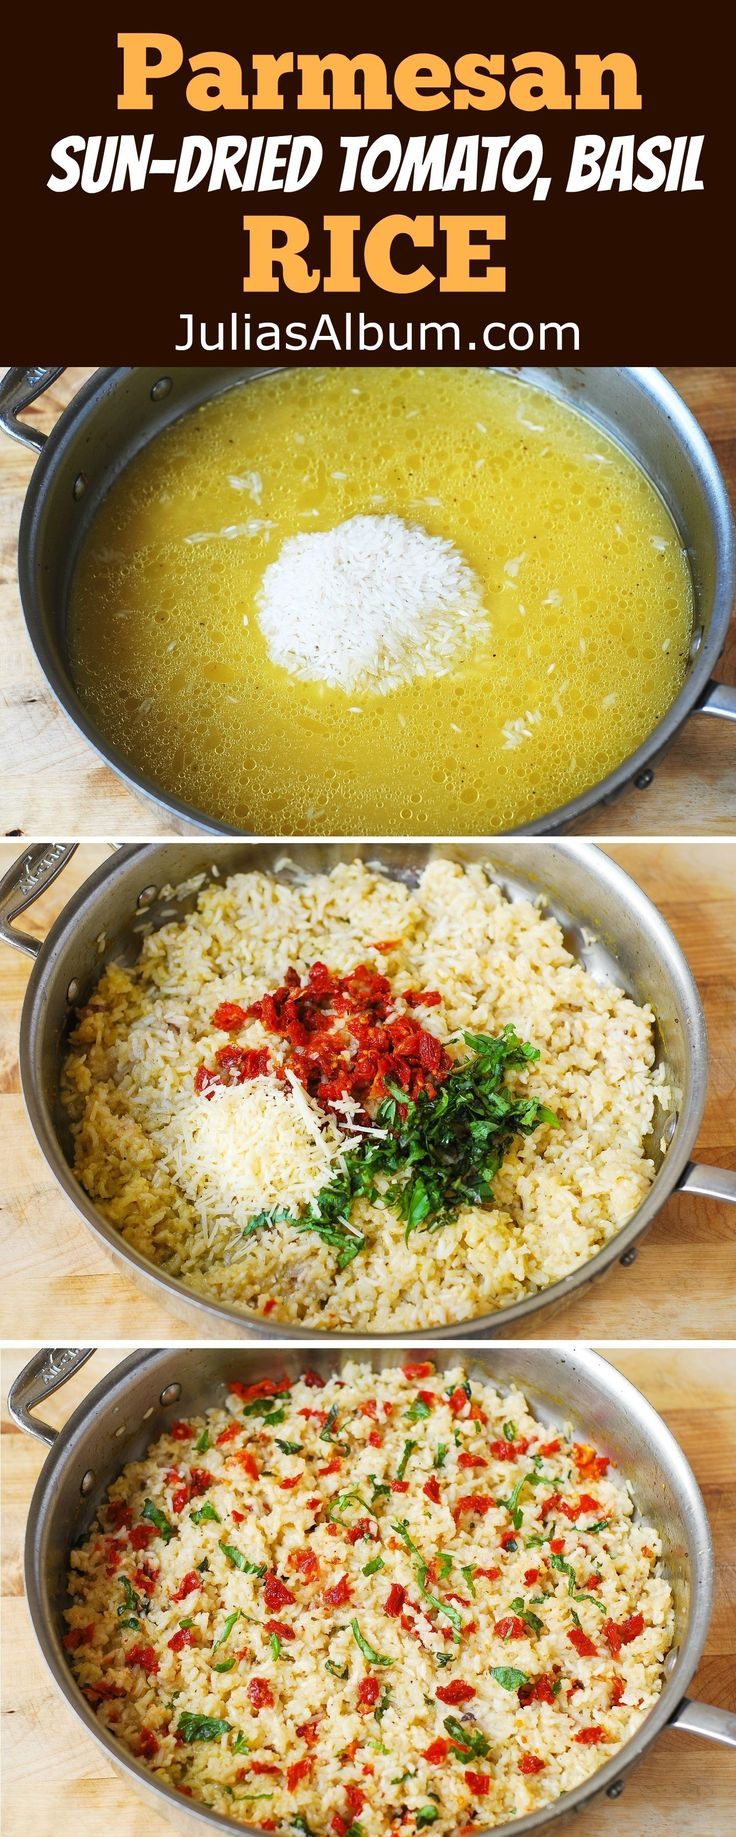 Parmesan, Sun-Dried Tomato, Basil Rice - easy gluten free side dish recipe